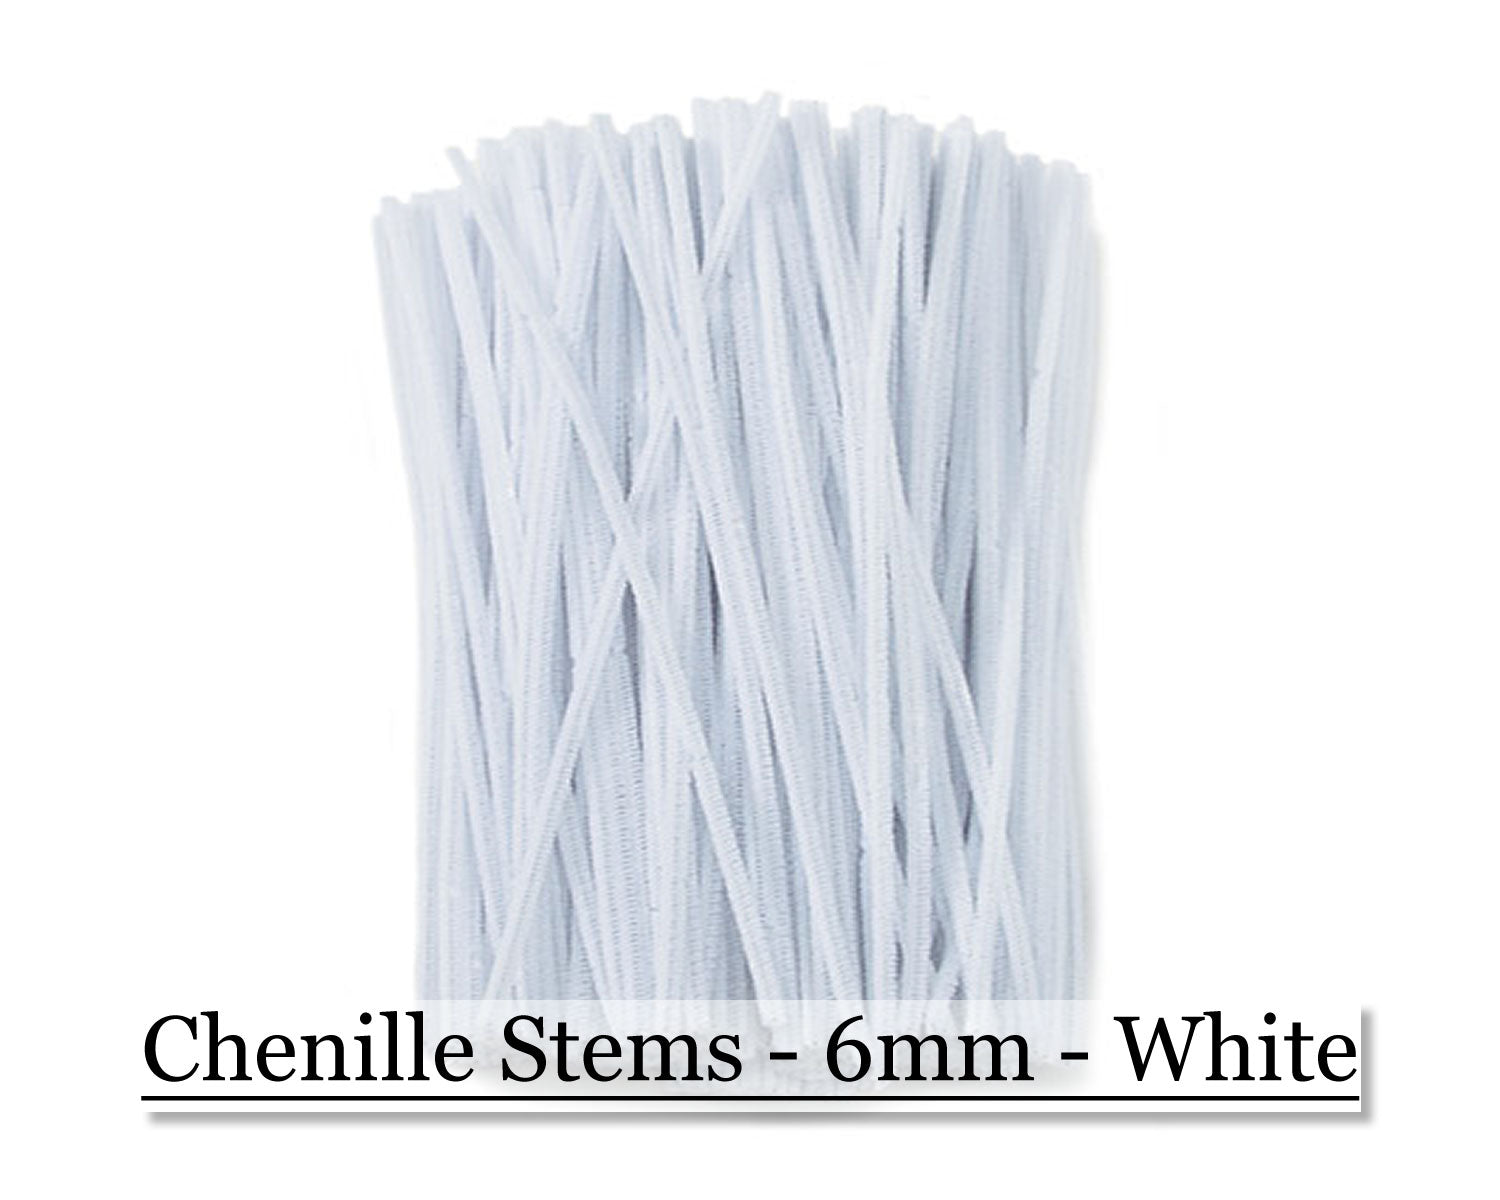 Chenille Stems - 6mm - White